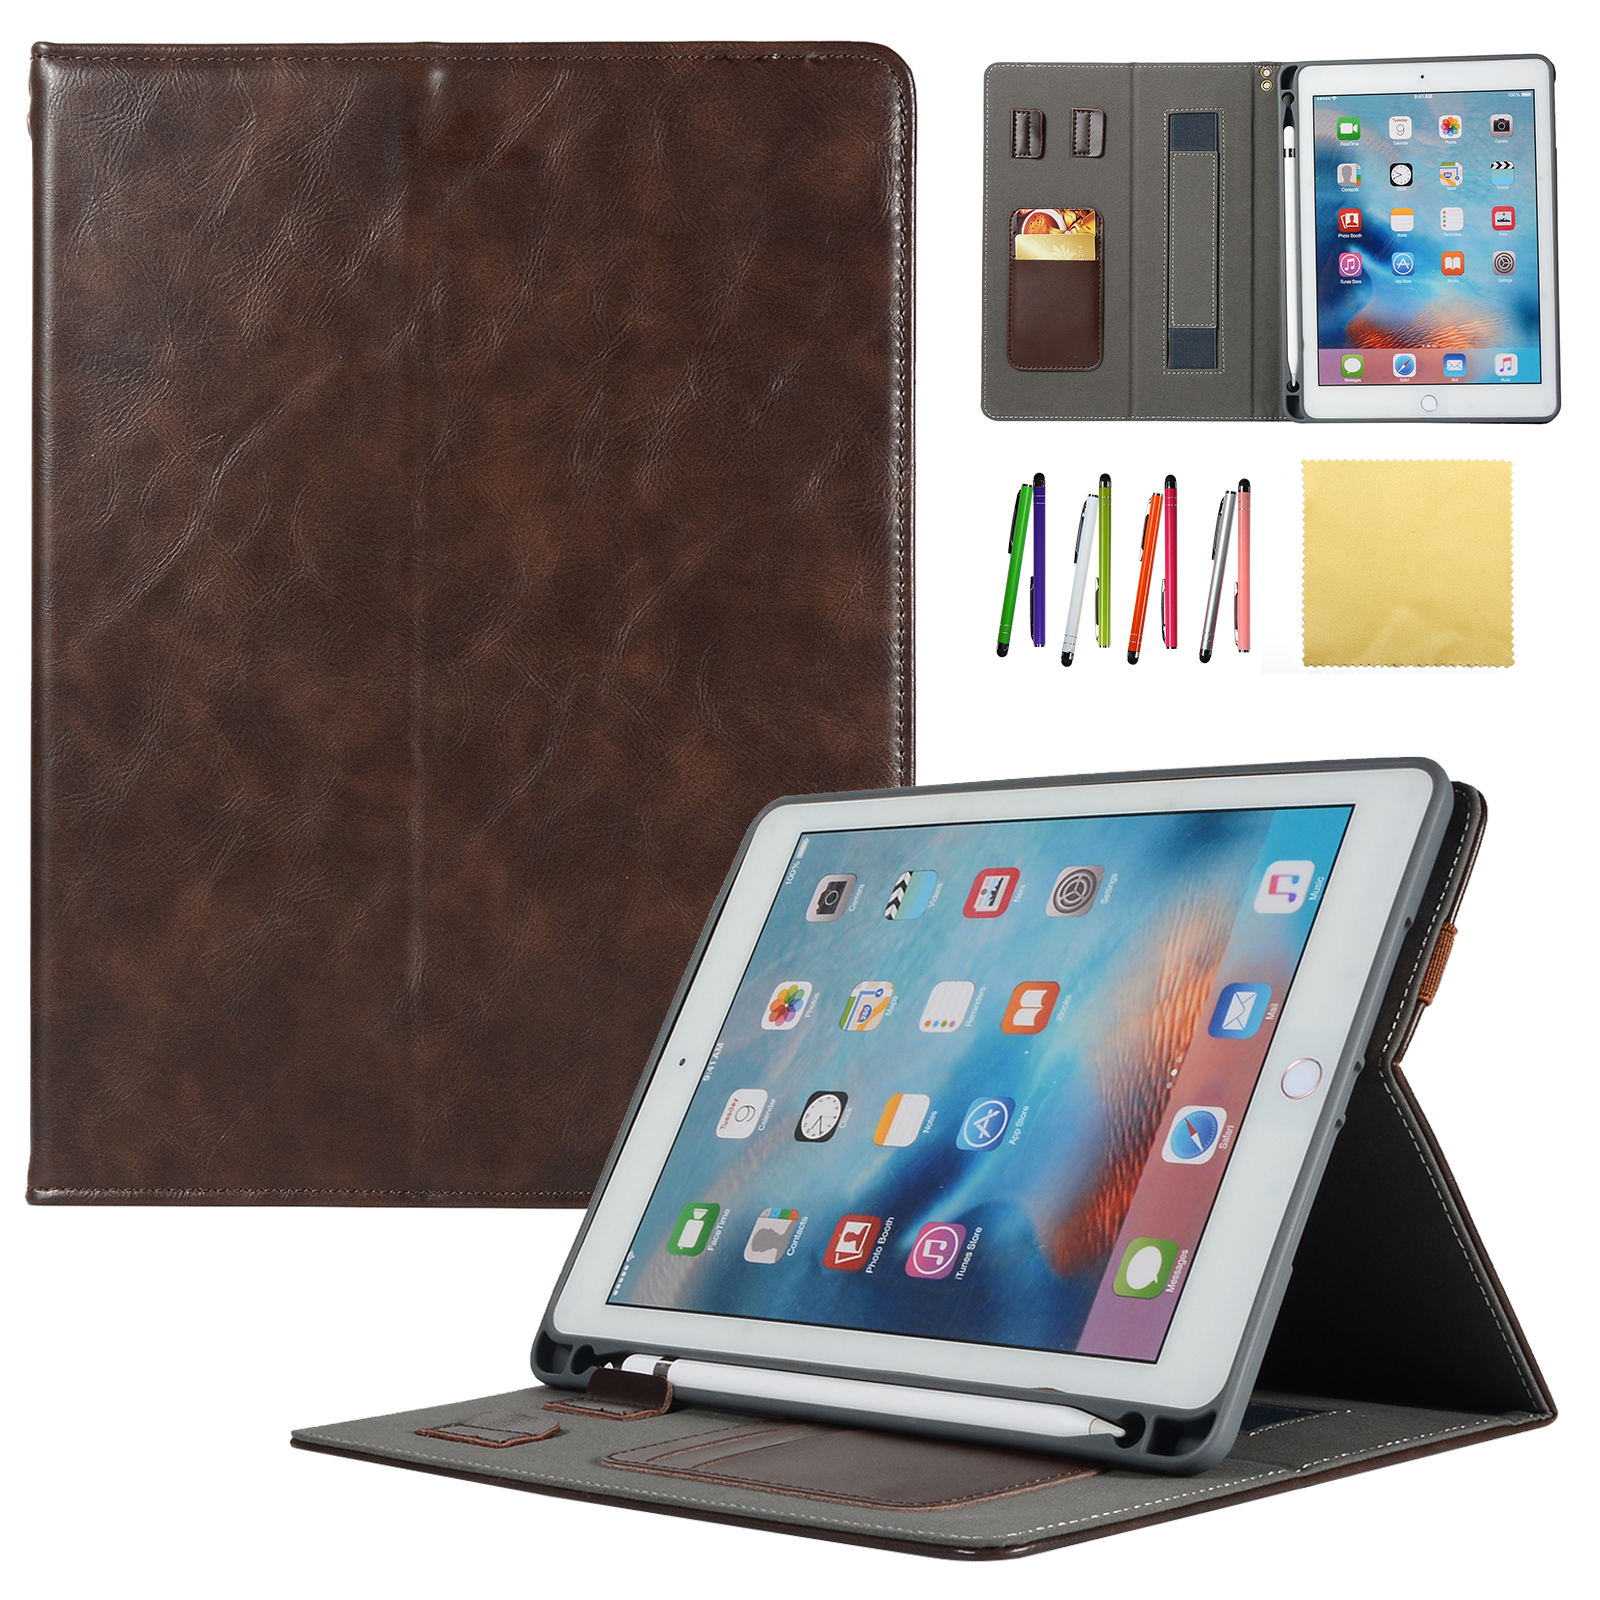 New iPad 9.7 2018 & 2017,iPad Pro 9.7, iPad Air 1 / 2 Kids Case, Goodest Stand Smart Covers w/ Auto Sleep/Wake & Pencil Holder for Apple iPad 6th Gen/ iPad 5th Gen/ Air 2 1/ Pro 9.7, Coffee